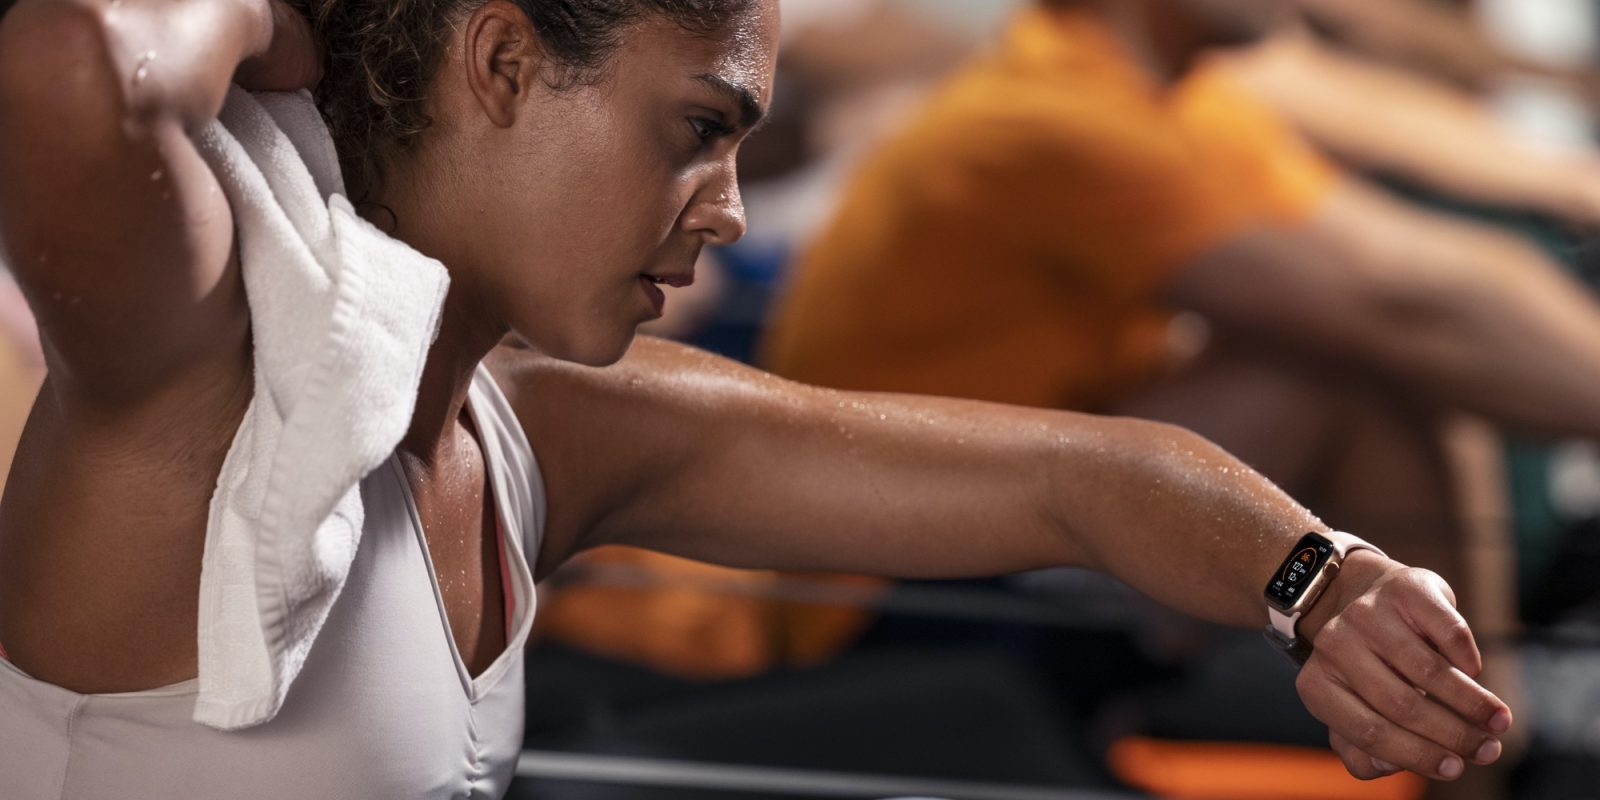 Apple Watch Connected: a rewards program that works as you work out at the gym